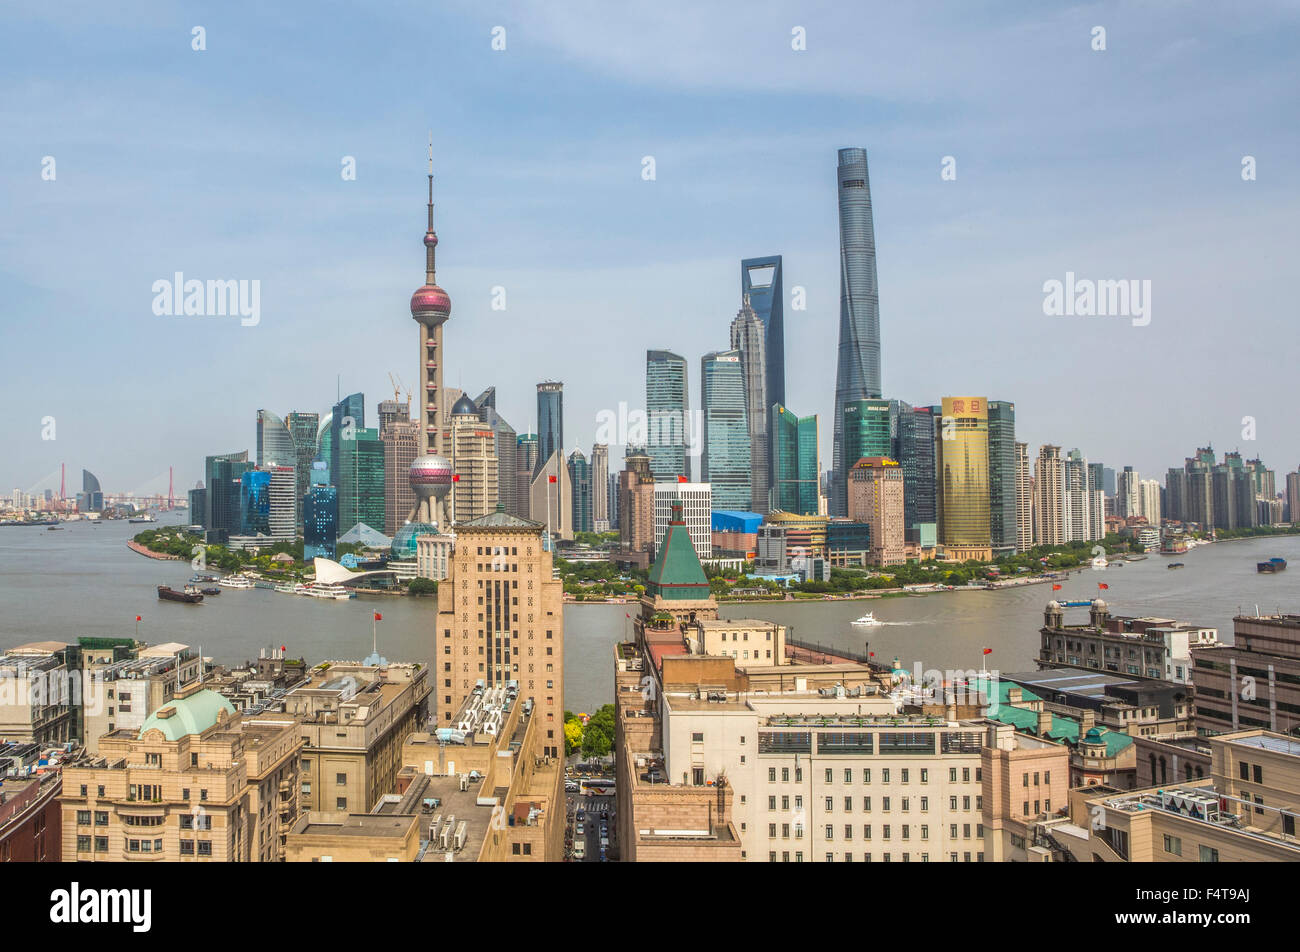 La Chine, la ville de Shanghai, le Bund et Pudong District skyline, La Rivière Huangpu Photo Stock